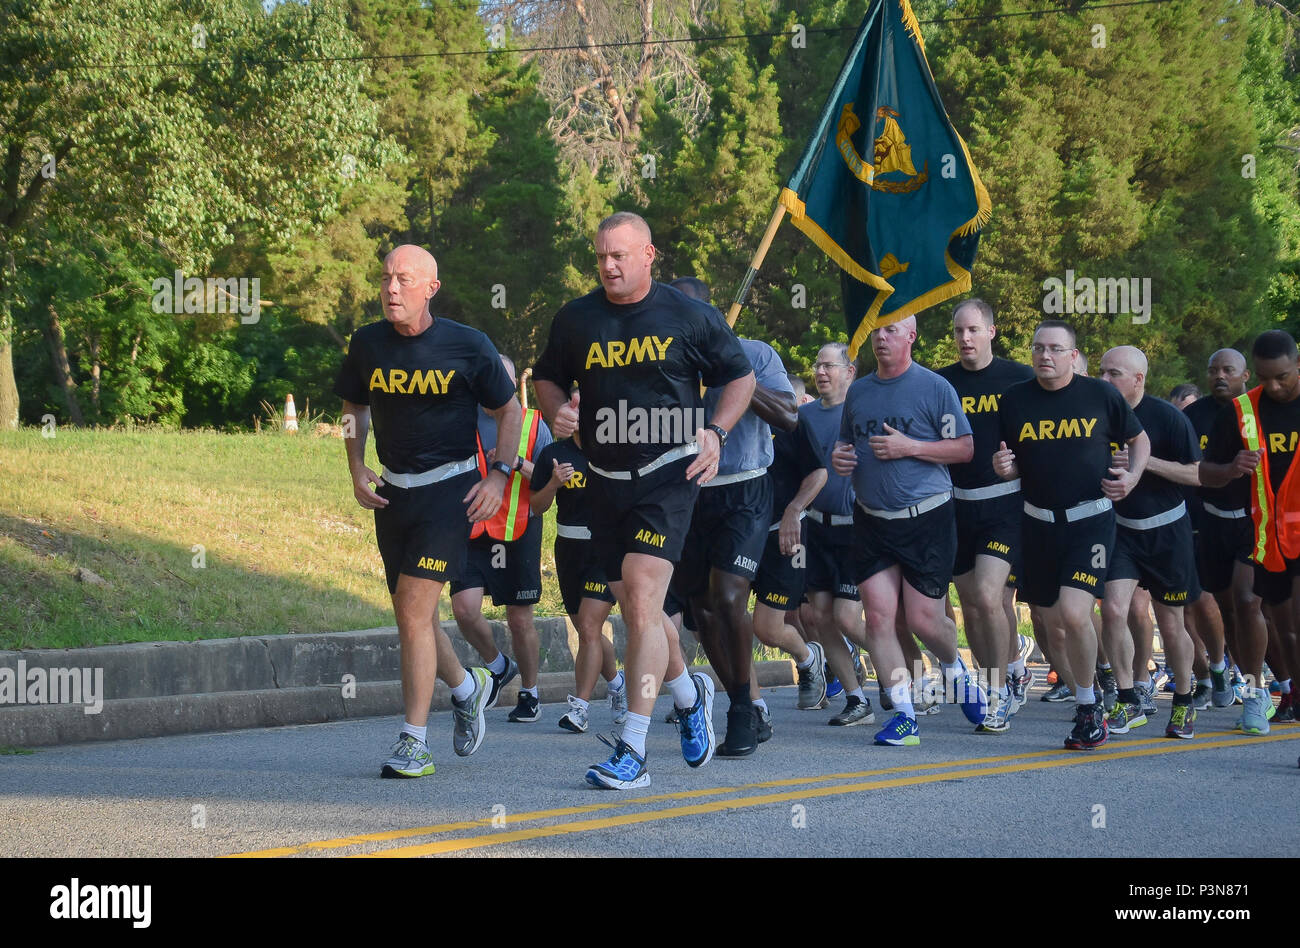 """Lieutenant General Charles D. Luckey, Chief of Army Reserve and U.S. Army Reserve Commanding General, and Brig. Gen. Robert D. Harter, director of Office of the Chief, Army Reserve, led Soldiers assigned to the Office of the Chief, Army Reserve, on a morning run at Fort Belvoir, Virginia, July 8, 2016.  As the Chief of Army Reserve and Commanding General, Luckey leads a community-based force of more than 200,000 Soldiers and Civilians with a """"footprint"""" that includes 50 states, five territories, and more than 30 countries.  (U.S. Army photo by Master Sgt. Marisol Walker) - Stock Image"""